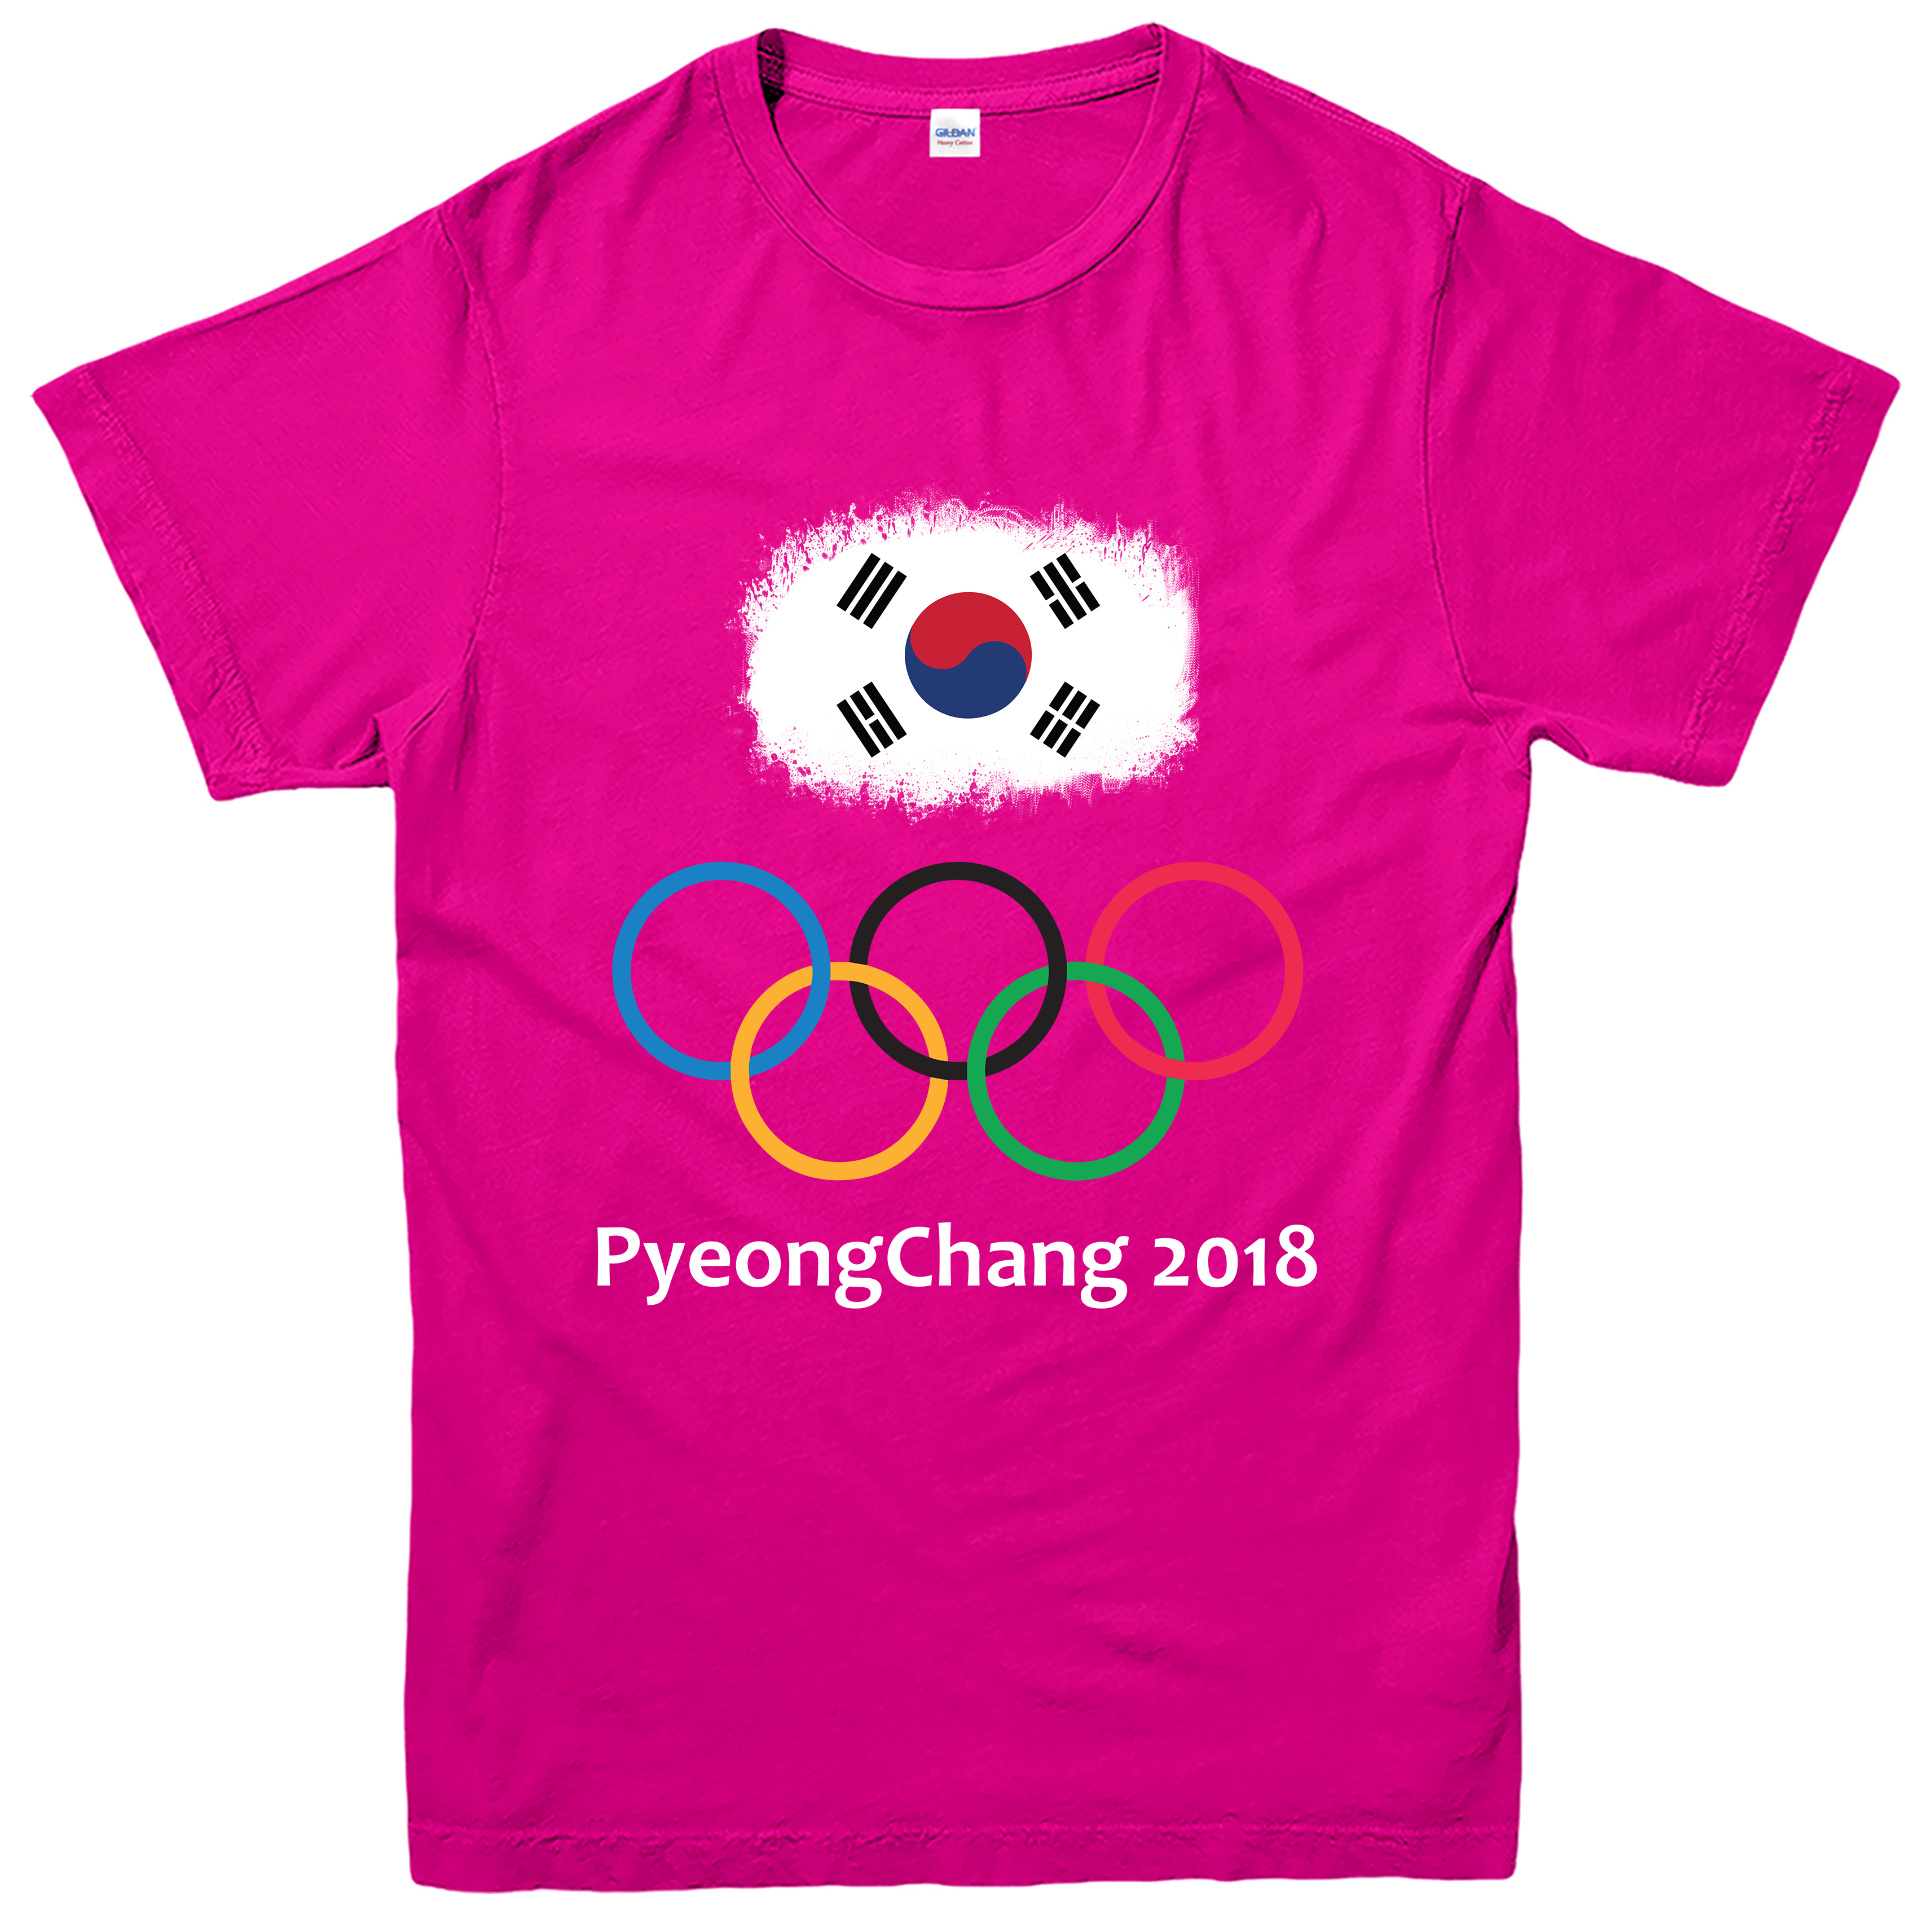 winter olympic 2018 t shirt south korea pyeongchang sports games tee top ebay. Black Bedroom Furniture Sets. Home Design Ideas